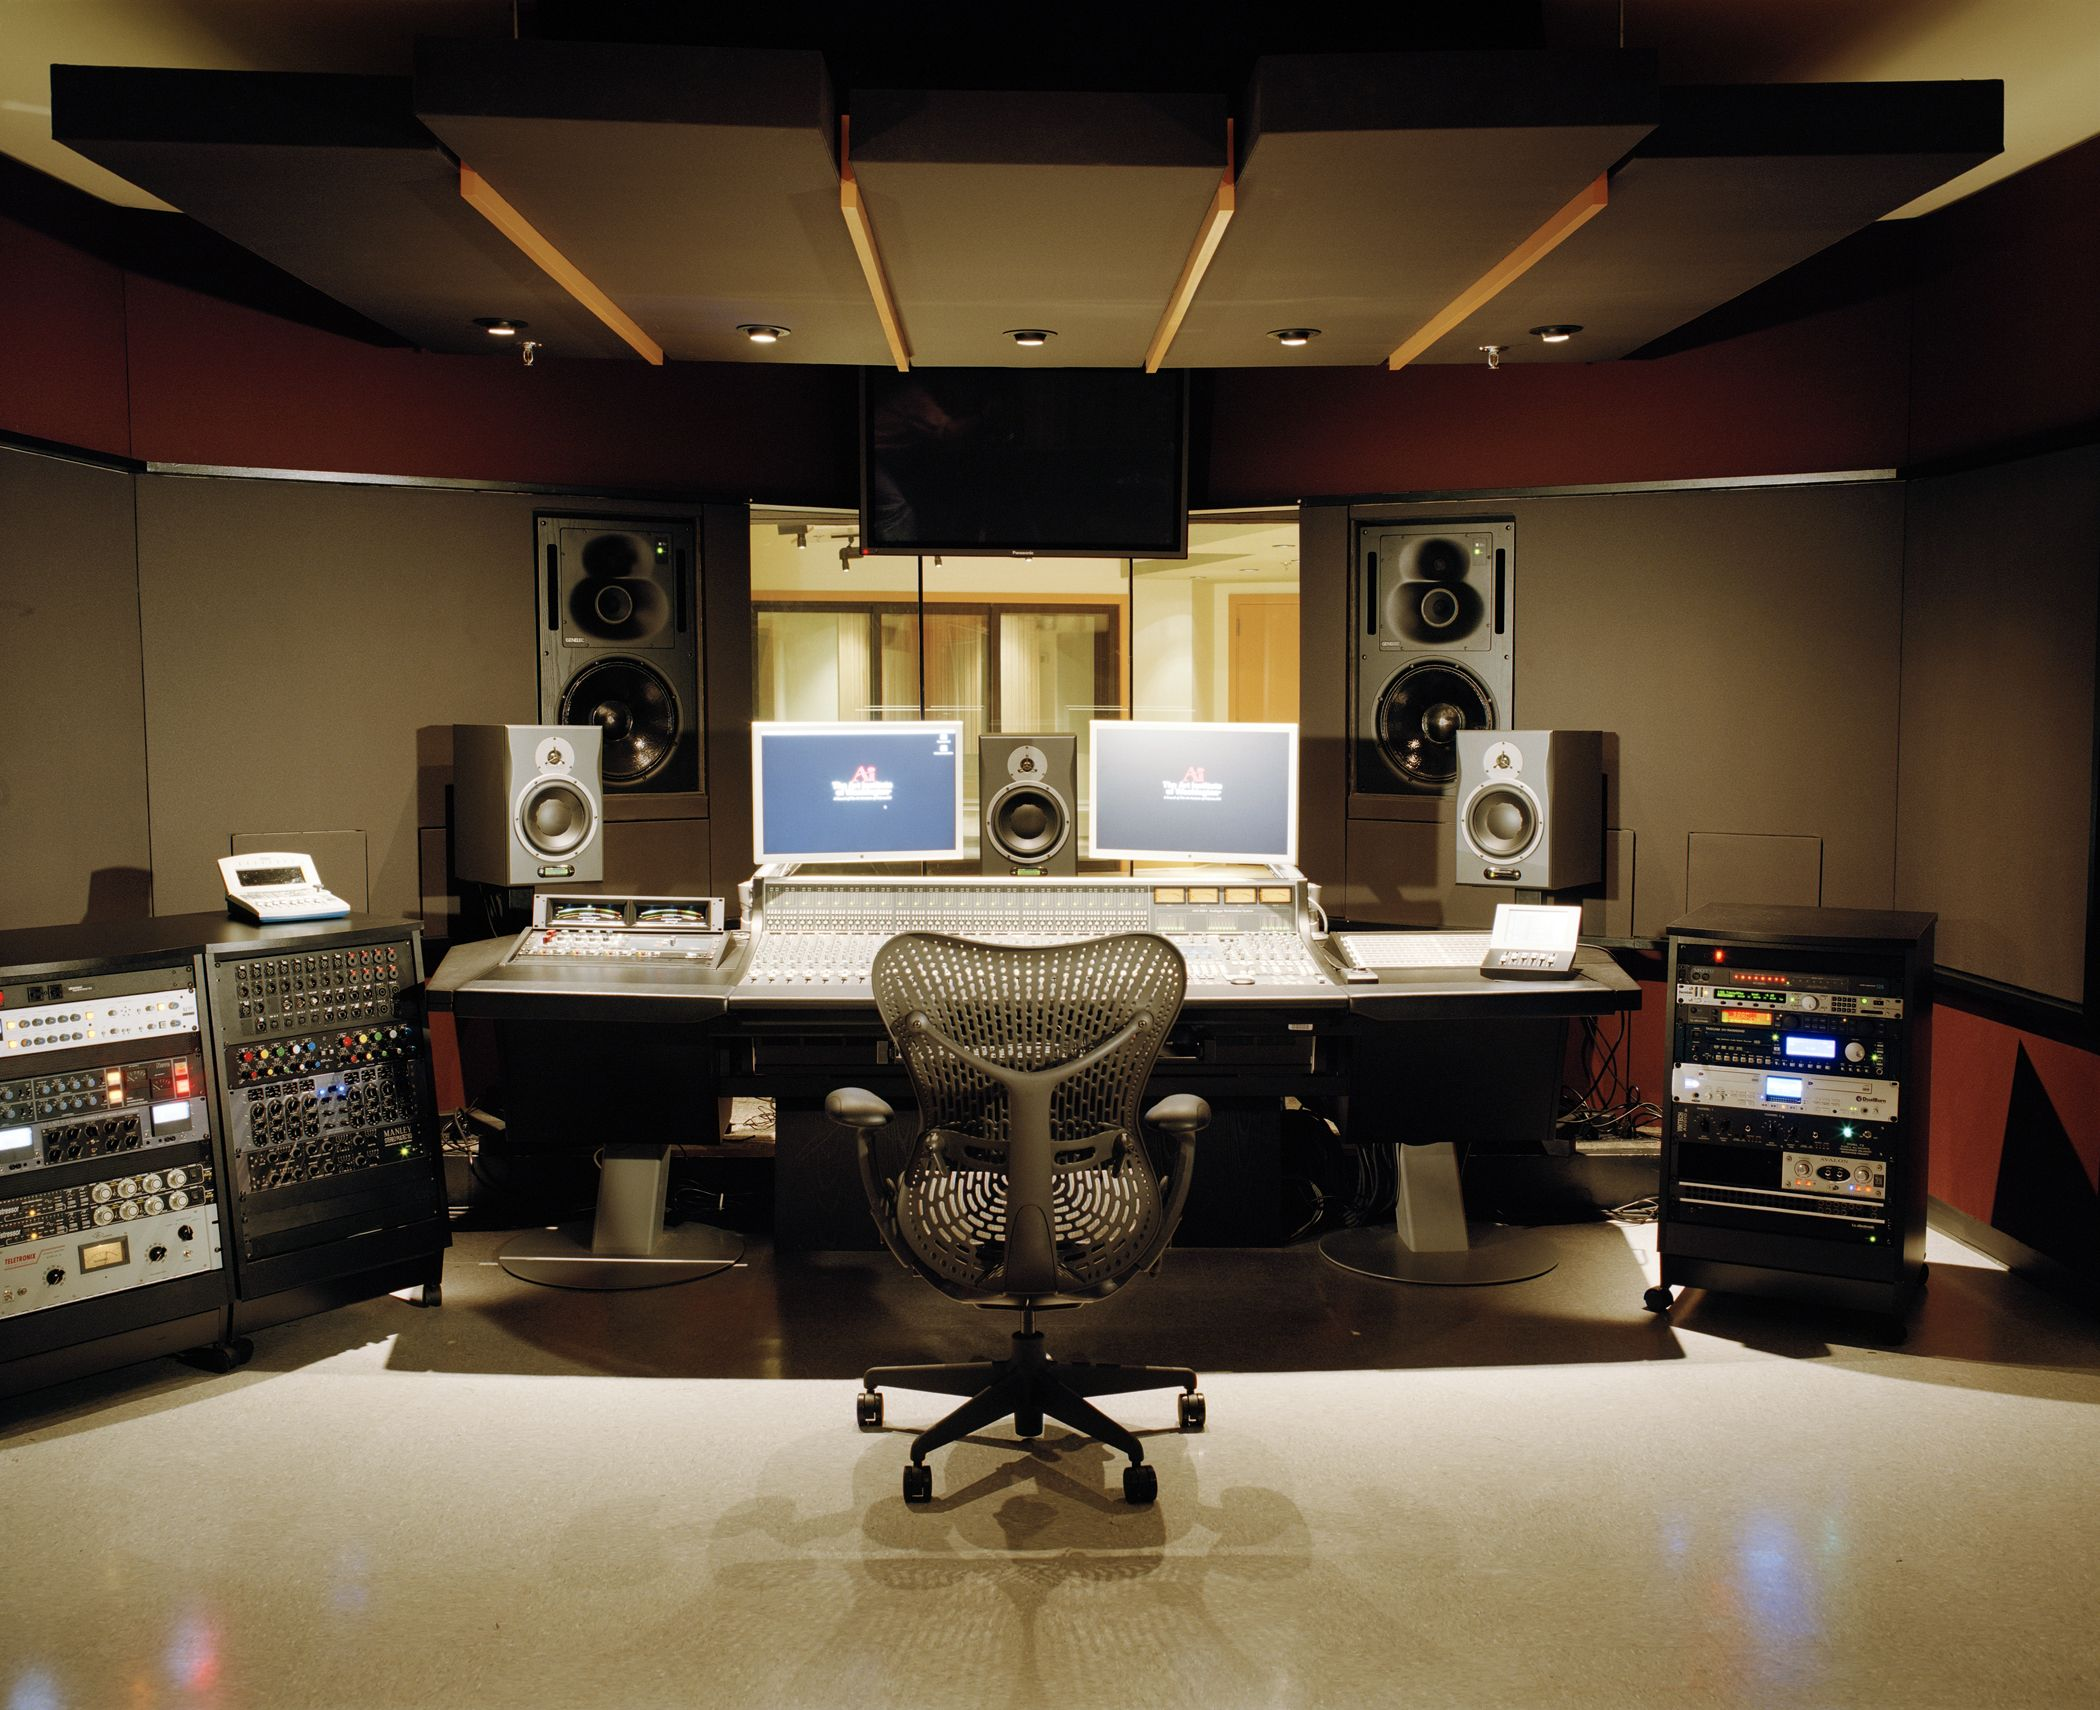 Astounding 17 Best Images About 01 Music Recording Studio On Pinterest Largest Home Design Picture Inspirations Pitcheantrous